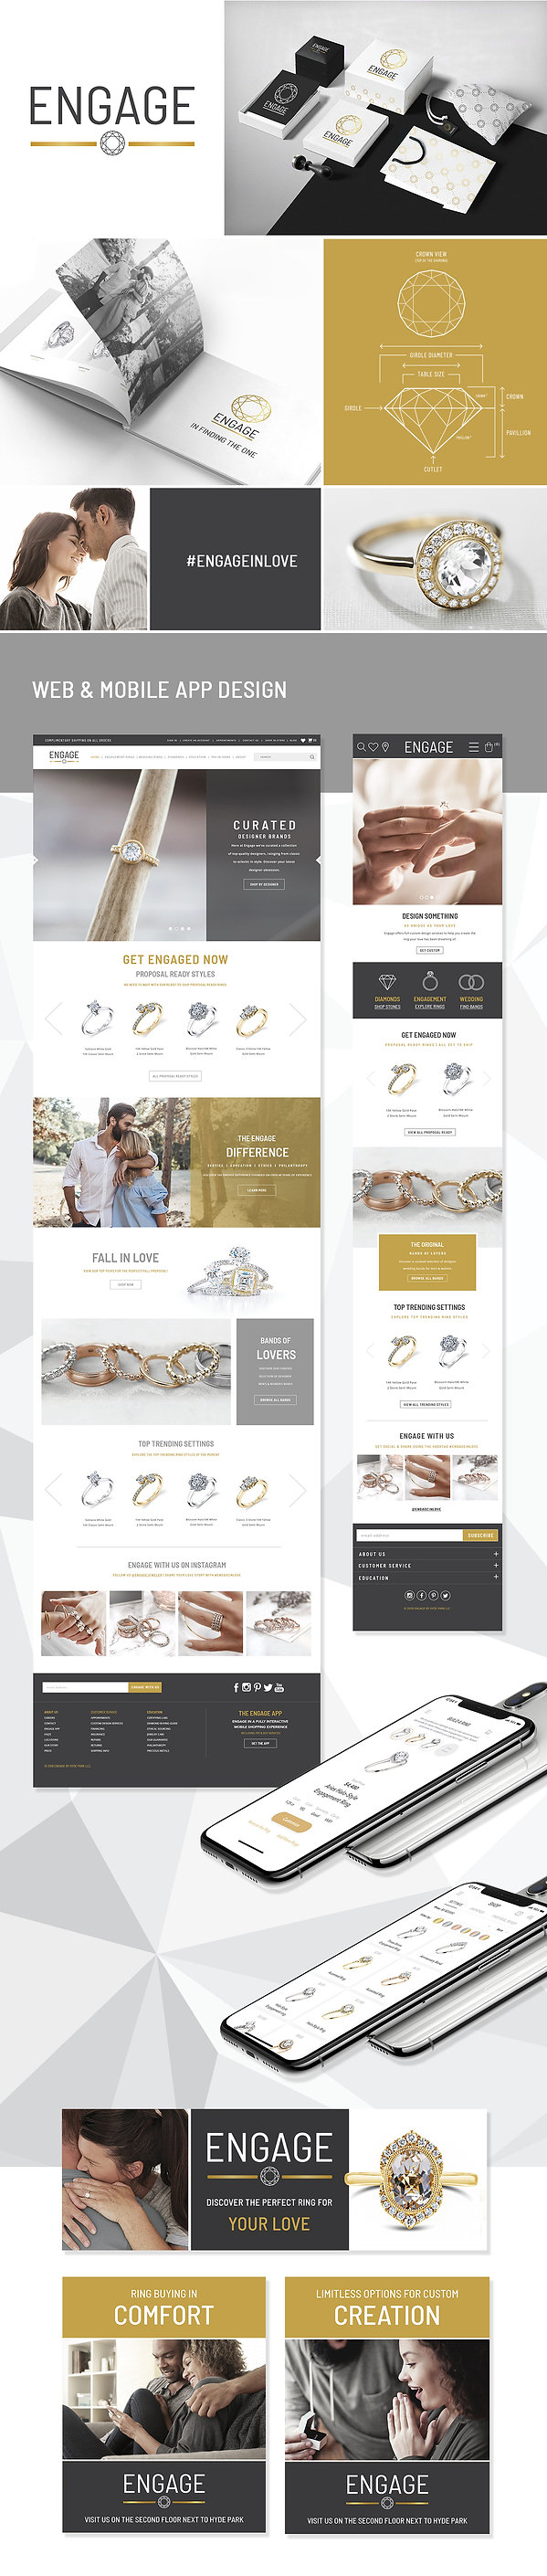 This image displays brandng, package, logo website, and app design done for Engage.